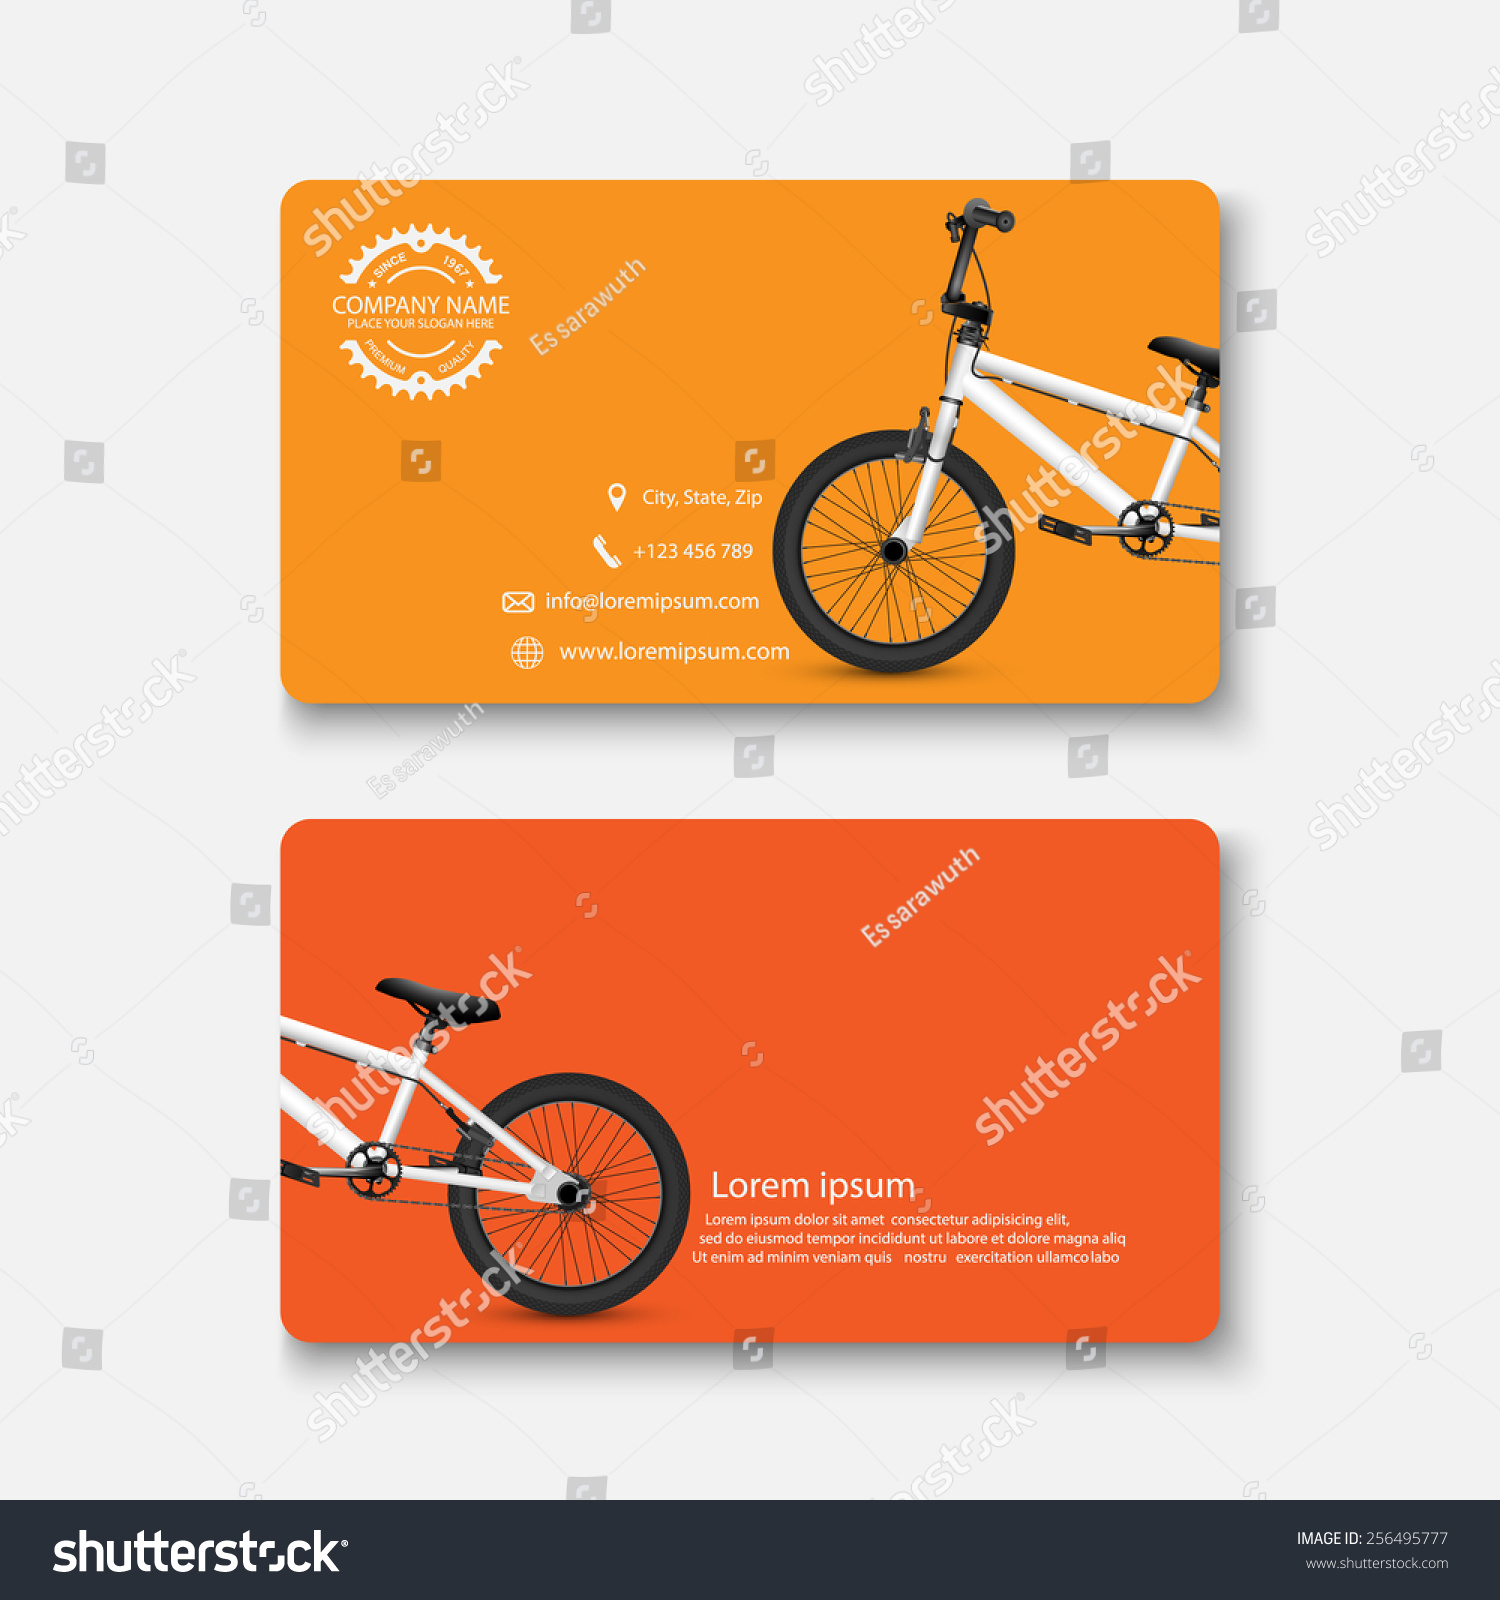 Business Card Bicyclevector Stock Photo (Photo, Vector, Illustration ...